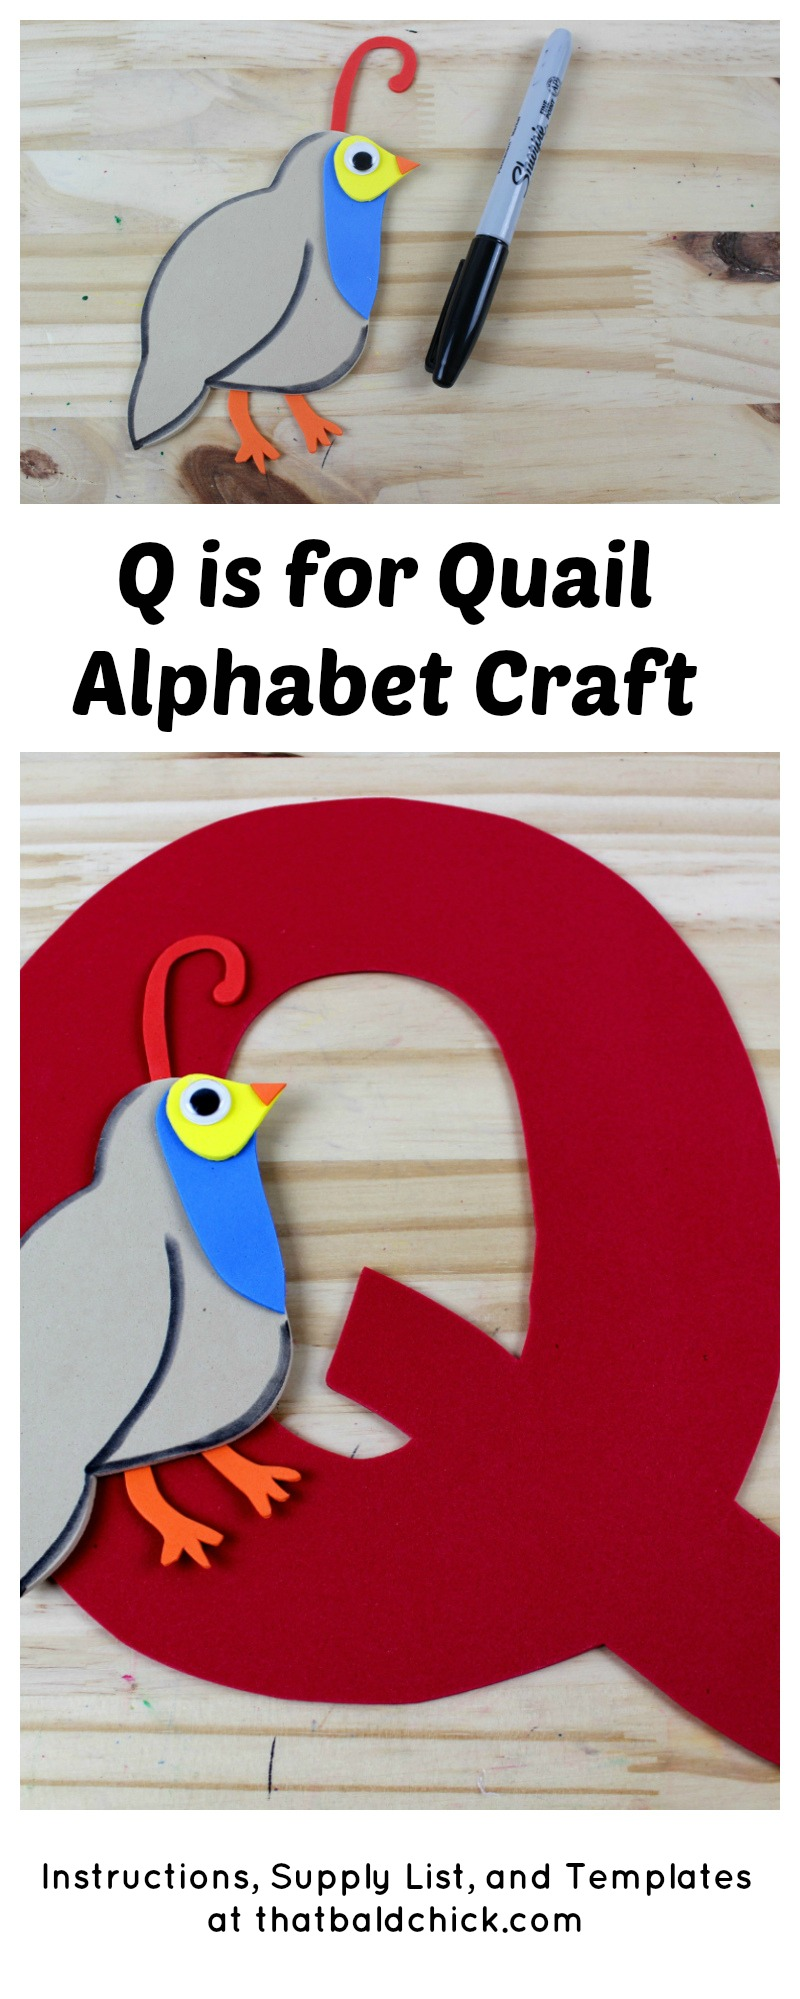 Q is for Quail Alphabet Craft - supply list, instructions, and templates at thatbaldchick.com